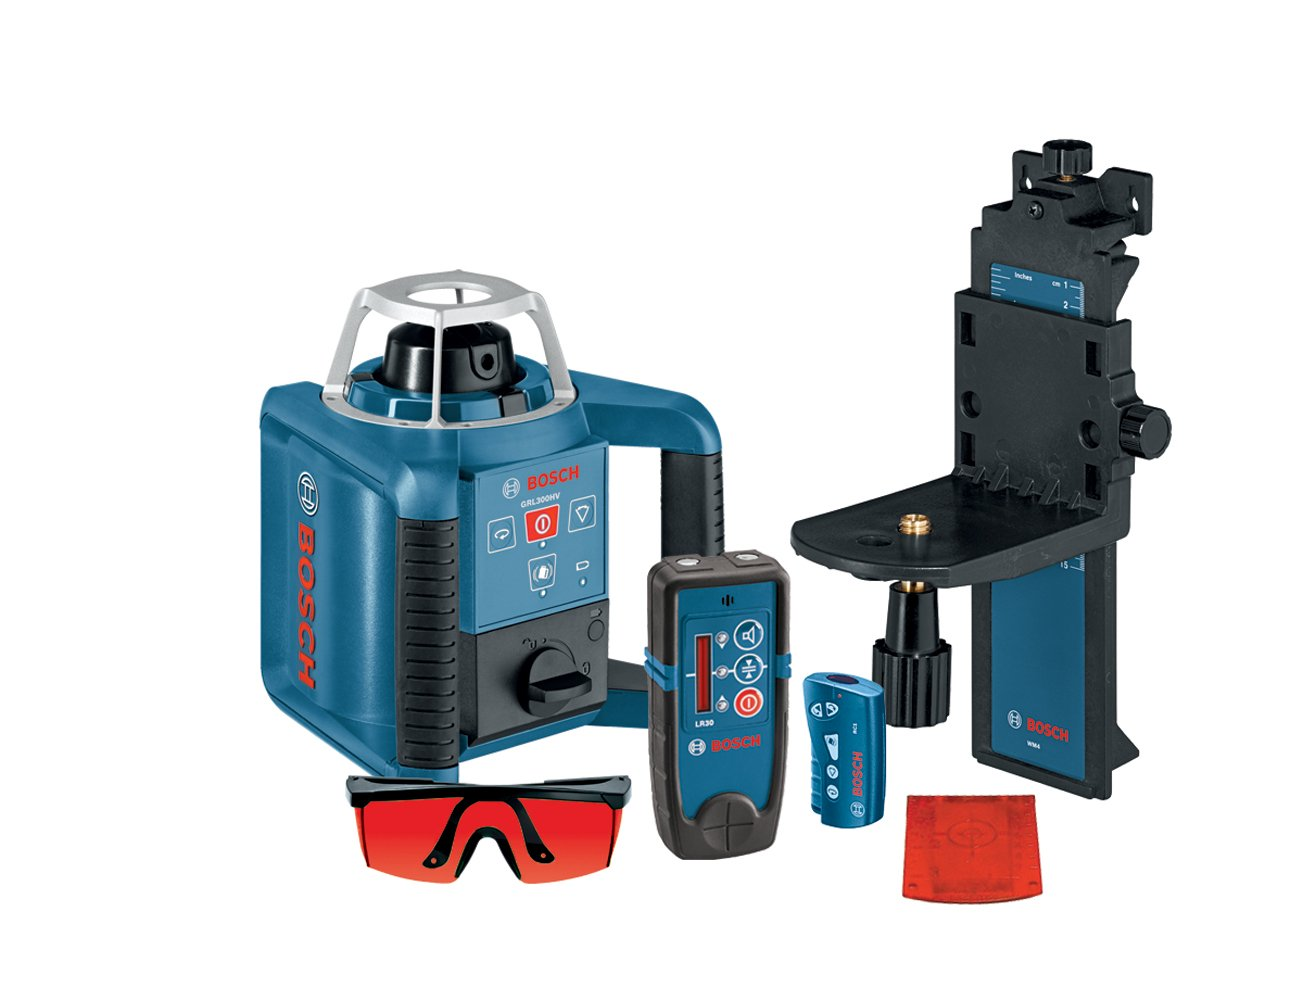 Bosch Self Leveling Rotary Laser with Layout Beam Interior Kit with Receiver Remote and Wall Mount GRL 300 HVD